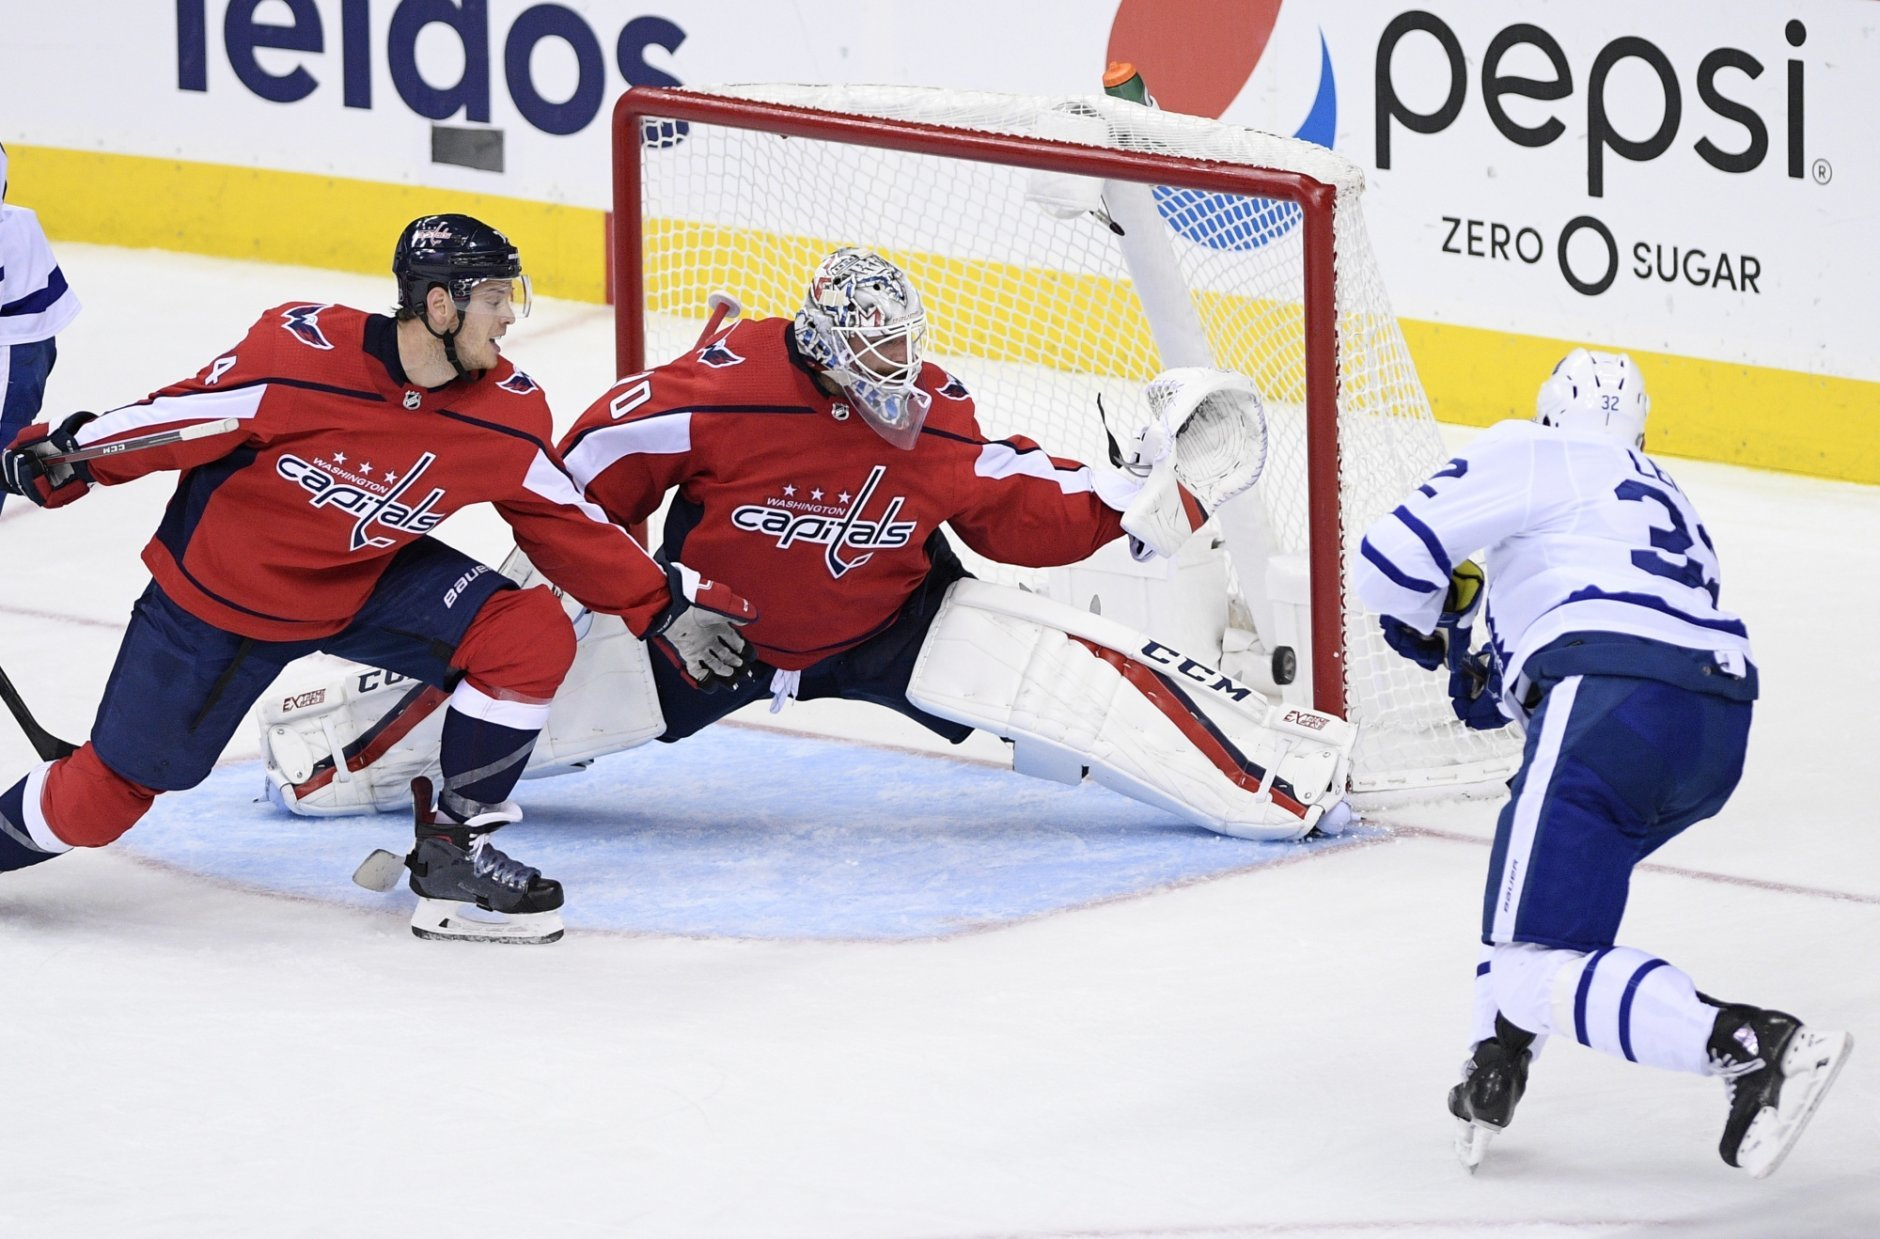 Toronto Maple Leafs left wing Josh Leivo (32) scores a goal past Washington Capitals goaltender Braden Holtby (70) and defenseman John Carlson, left, during the third period of an NHL hockey game, Saturday, Oct. 13, 2018, in Washington. The Maple Leafs won 4-2. (AP Photo/Nick Wass)